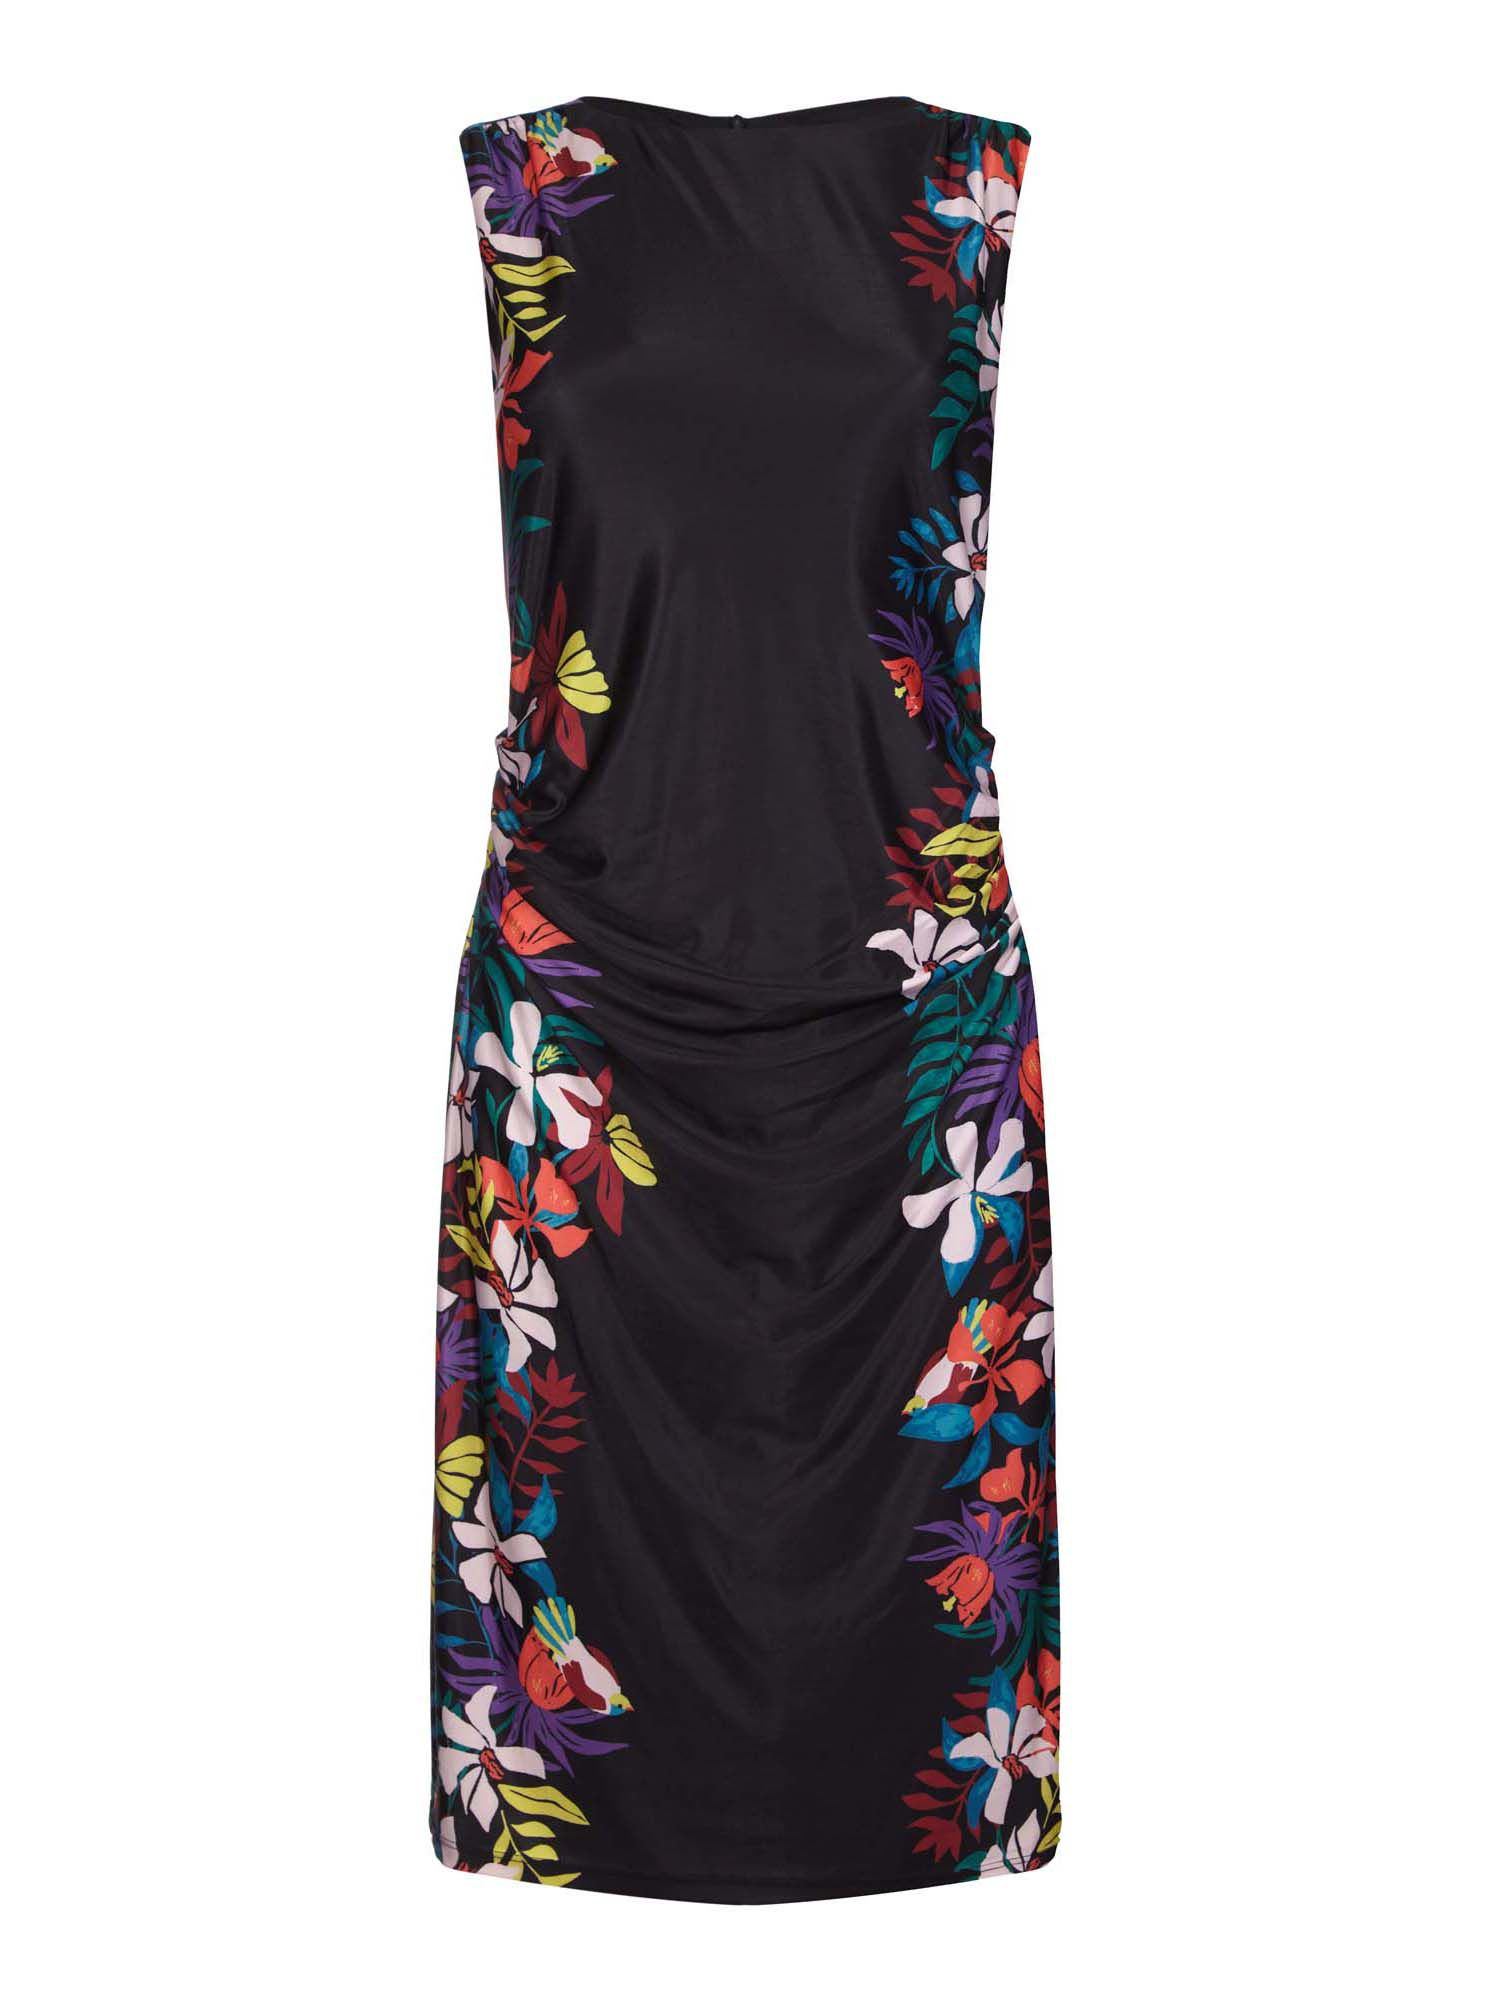 Yumi Curves Contrast Floral Pattern Dress, Black